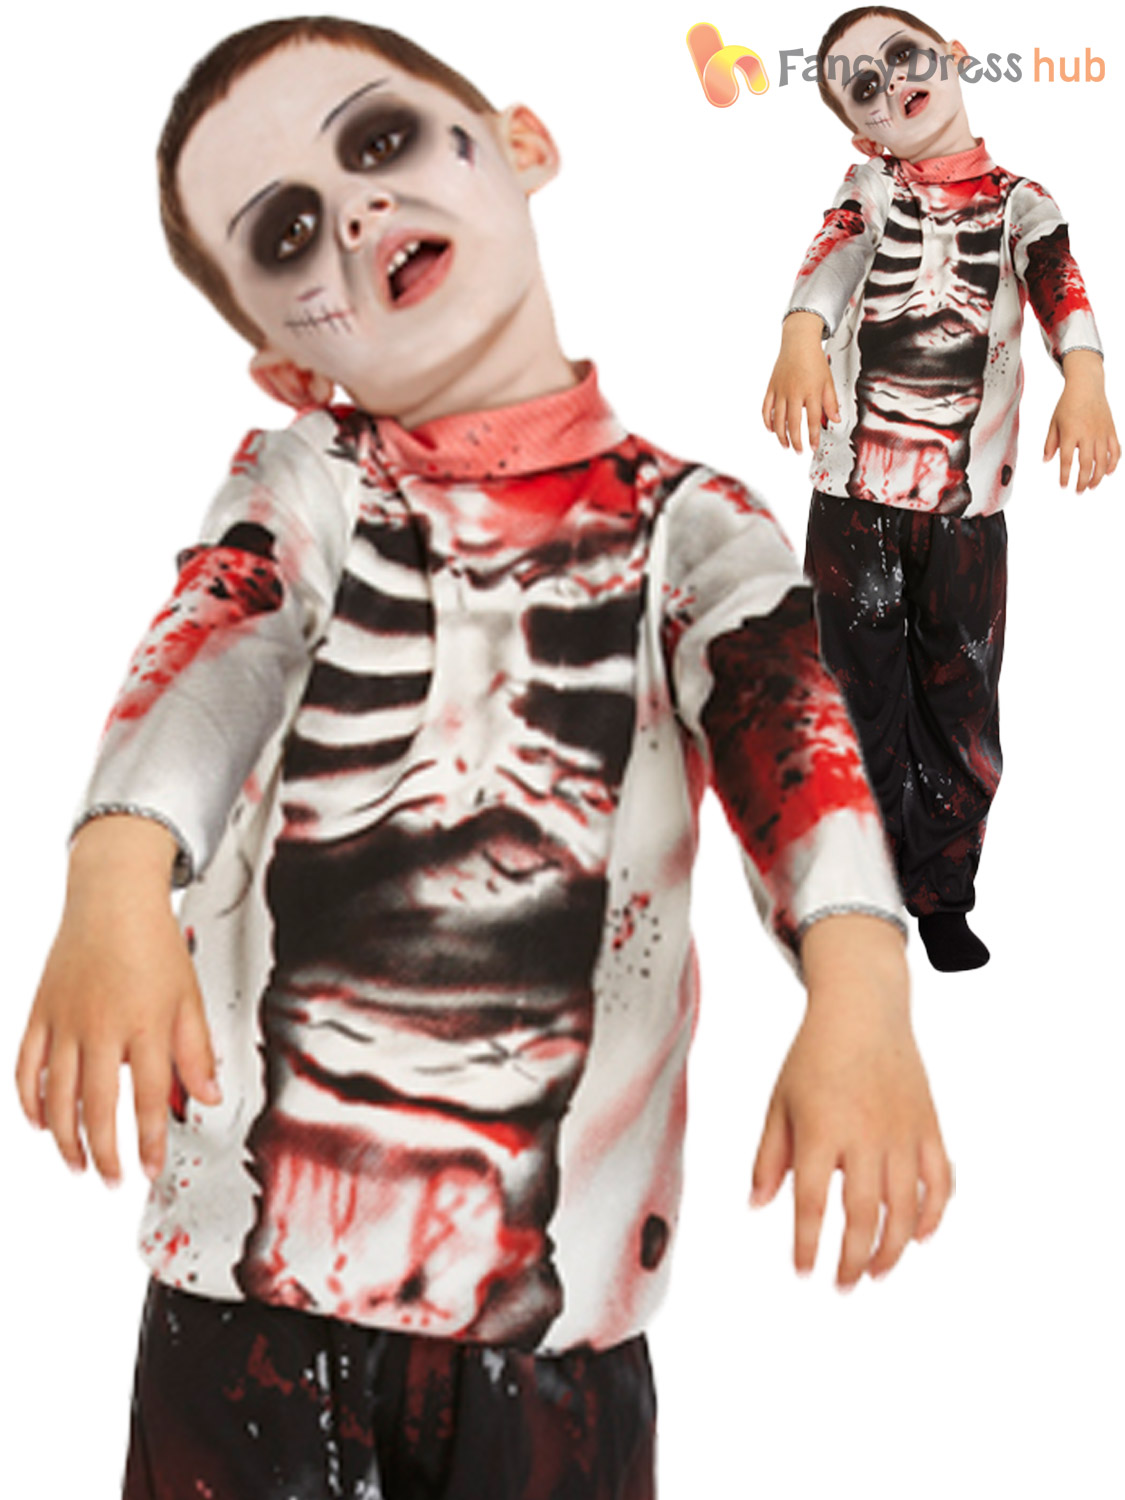 Zombie School Boy Costumes Boys Zombie Halloween Fancy Dress Kids Child Party